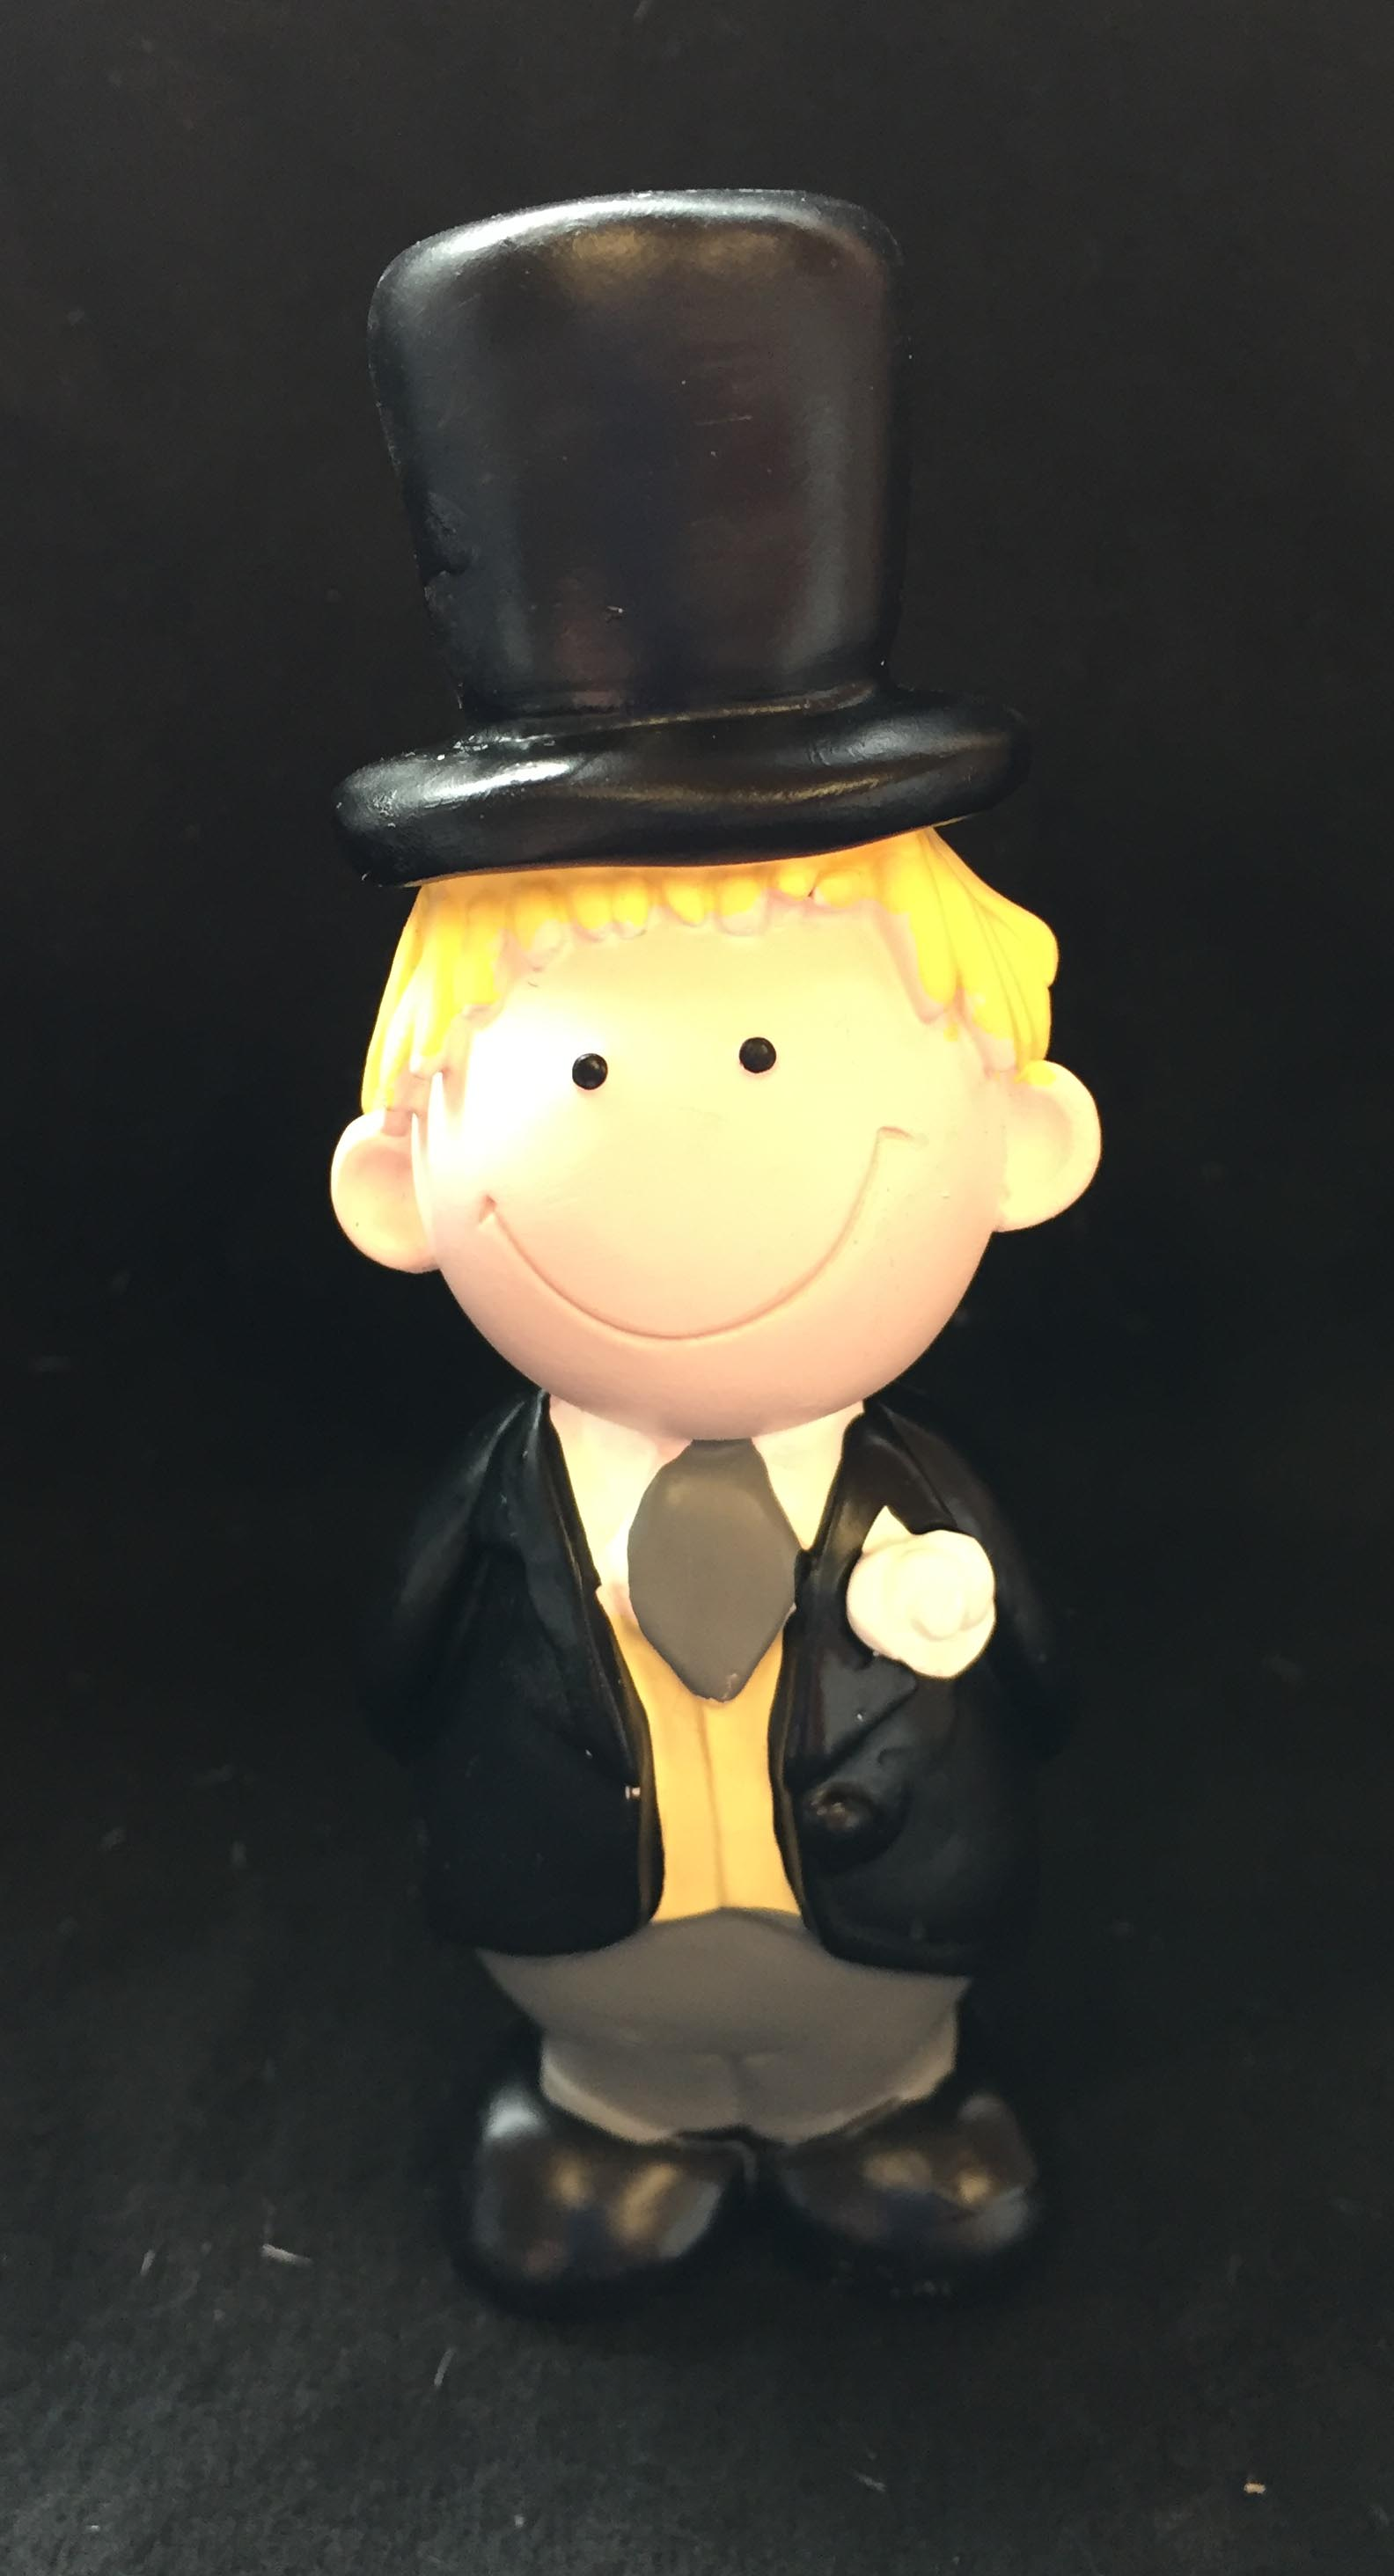 Blonde Hair Groom Wedding Cake Topper Decoration Fair Hair ...